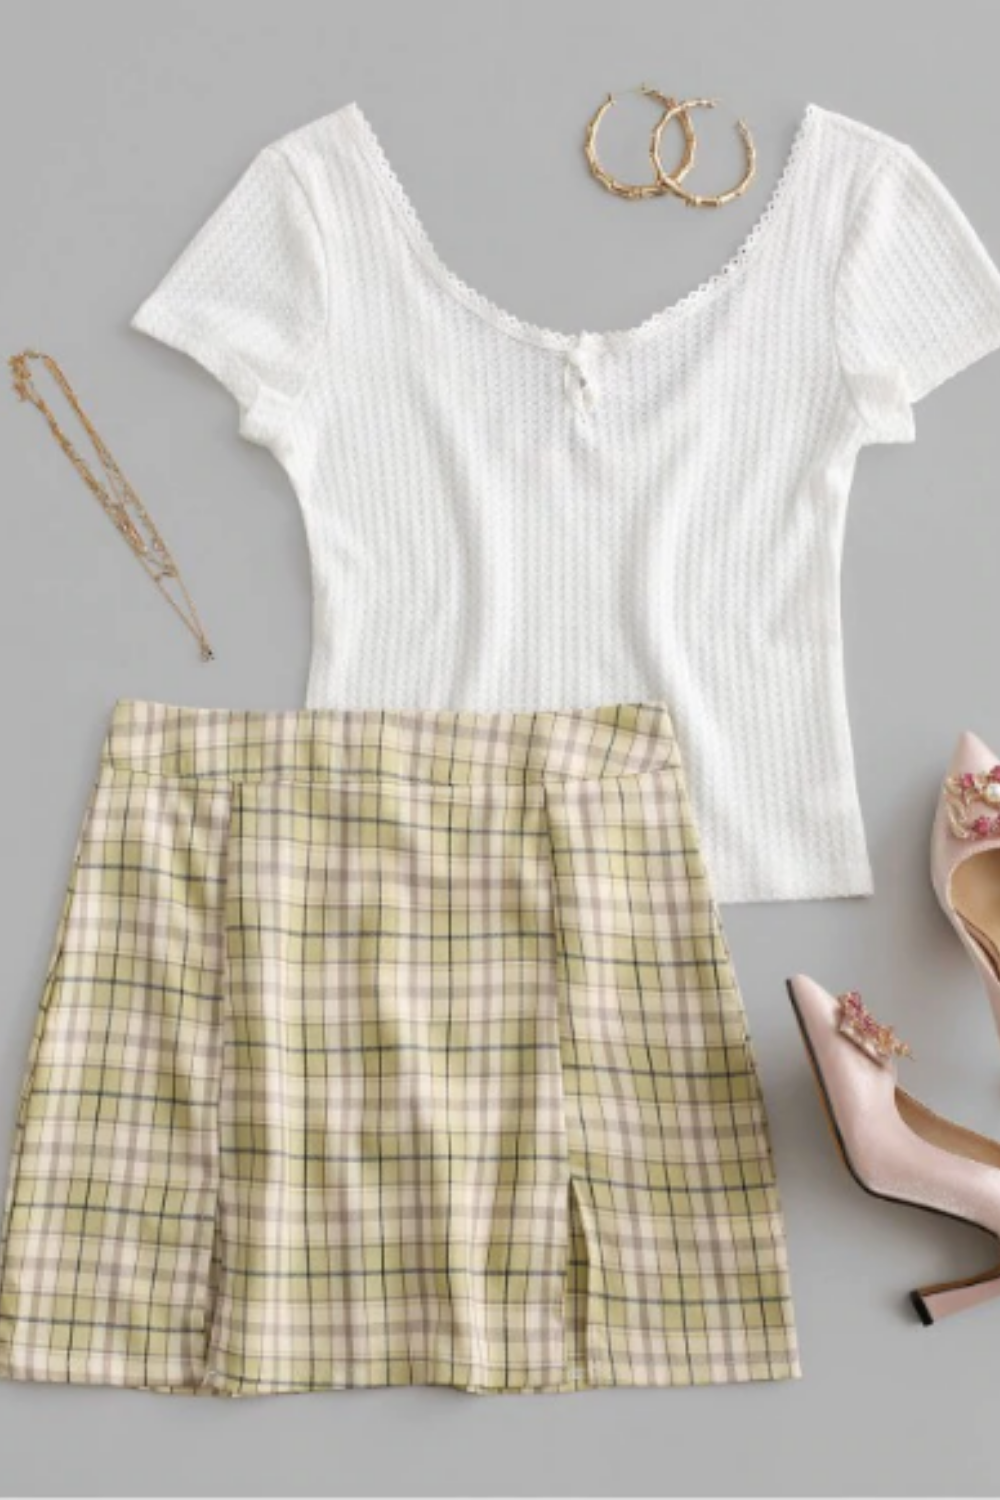 Cute skirt outfit for summer 2020 Click Now ! #skirtoutfit #summeroutfits